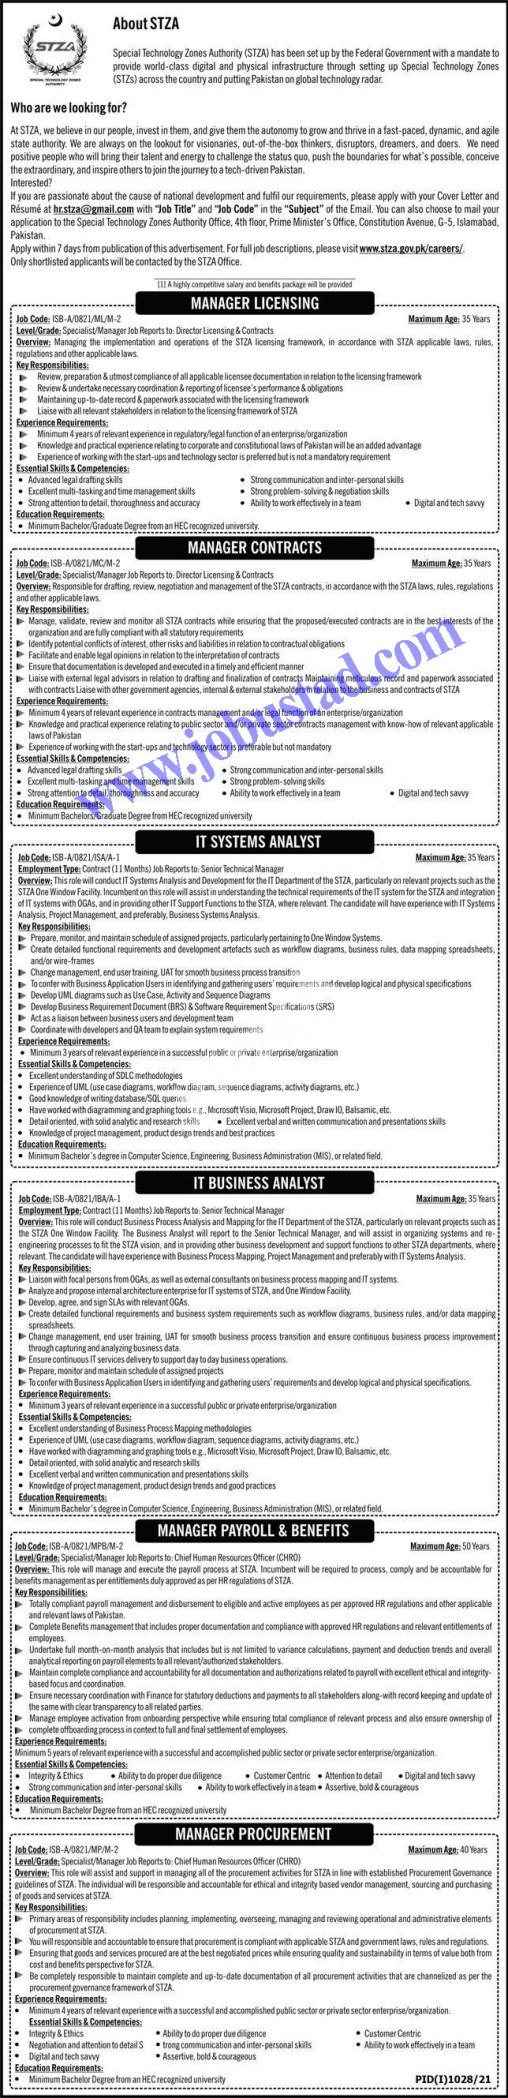 Government of Pakistan Special Technology Zones Authority STZA Jobs 2021